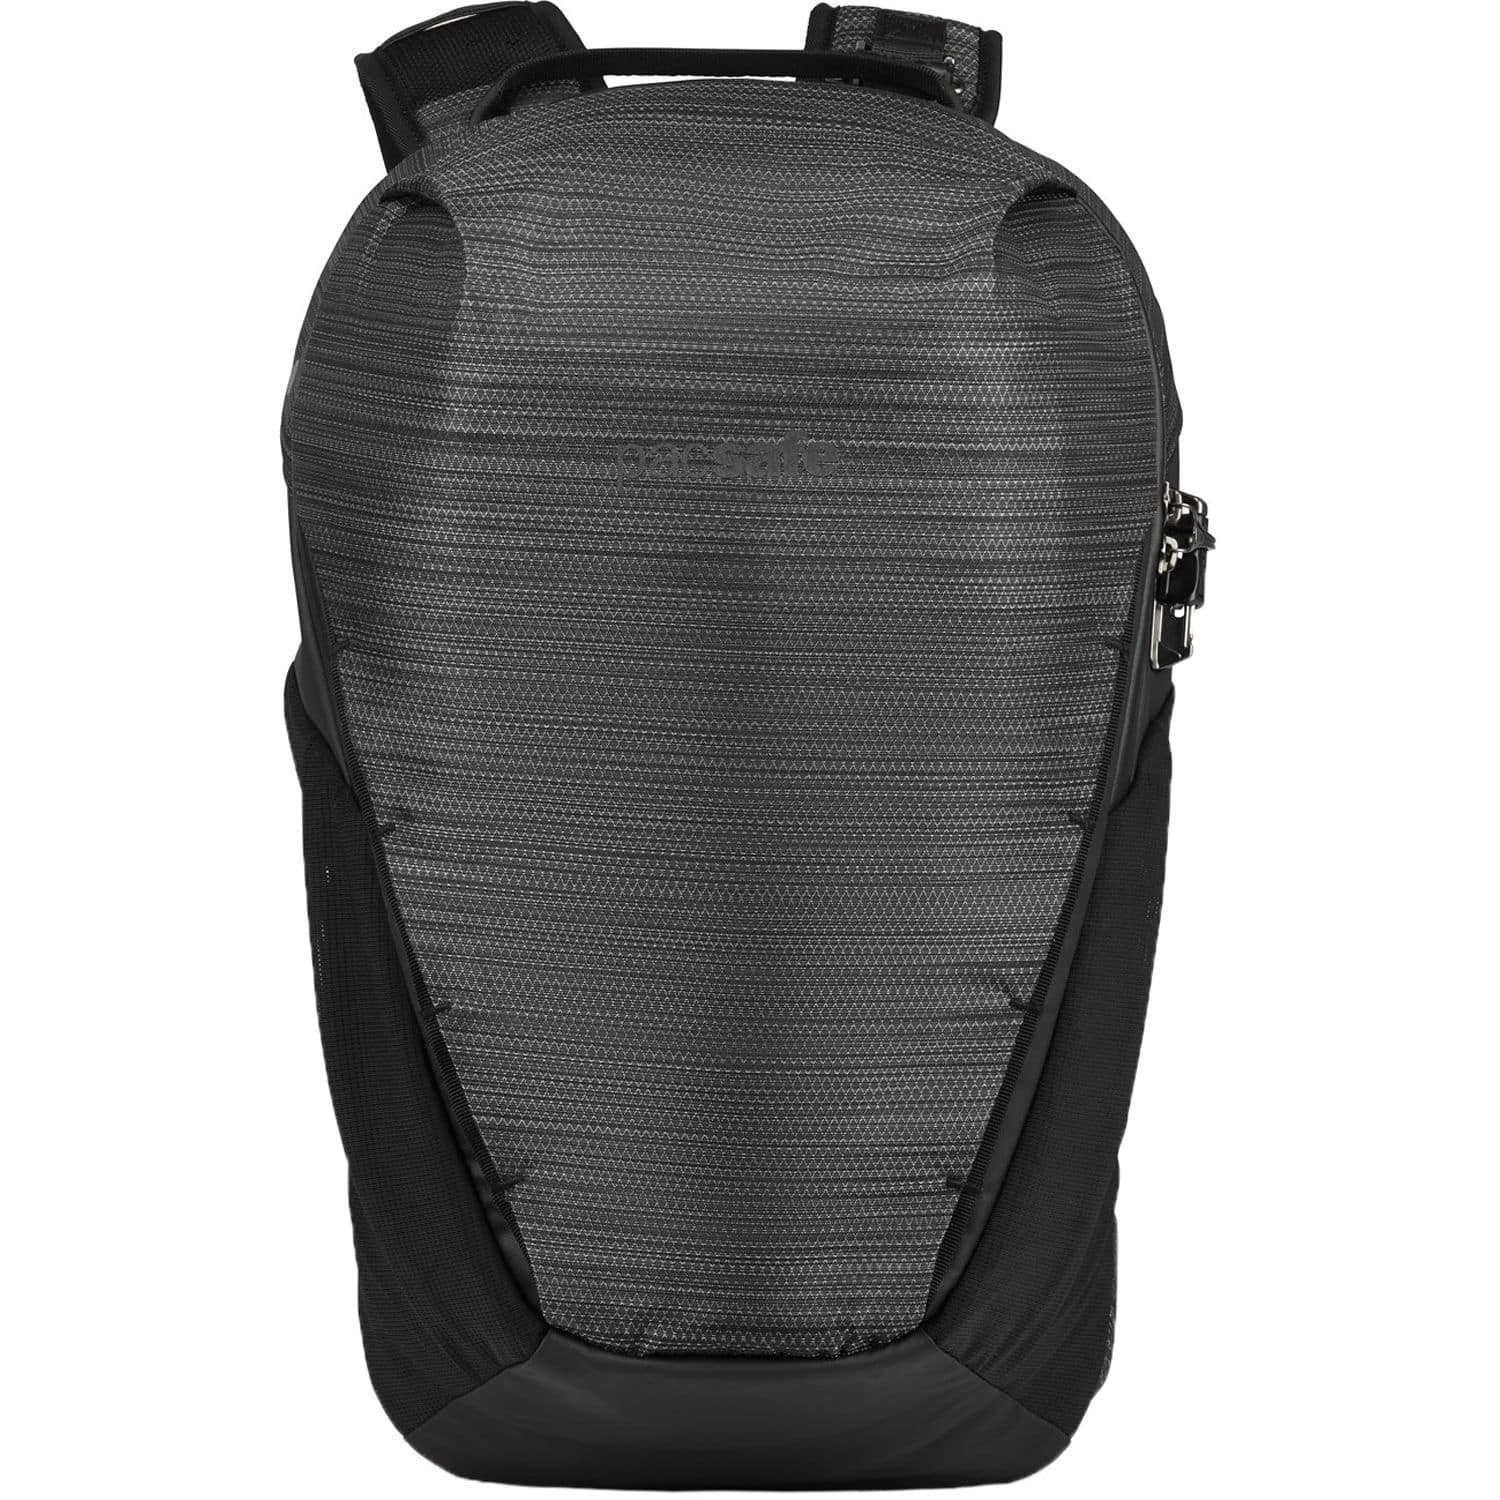 REI Co-Op Members: Pacsafe Venturesafe X18 Anti-Theft Backpack $37.40 + Free Store Pickup or F/S $50+